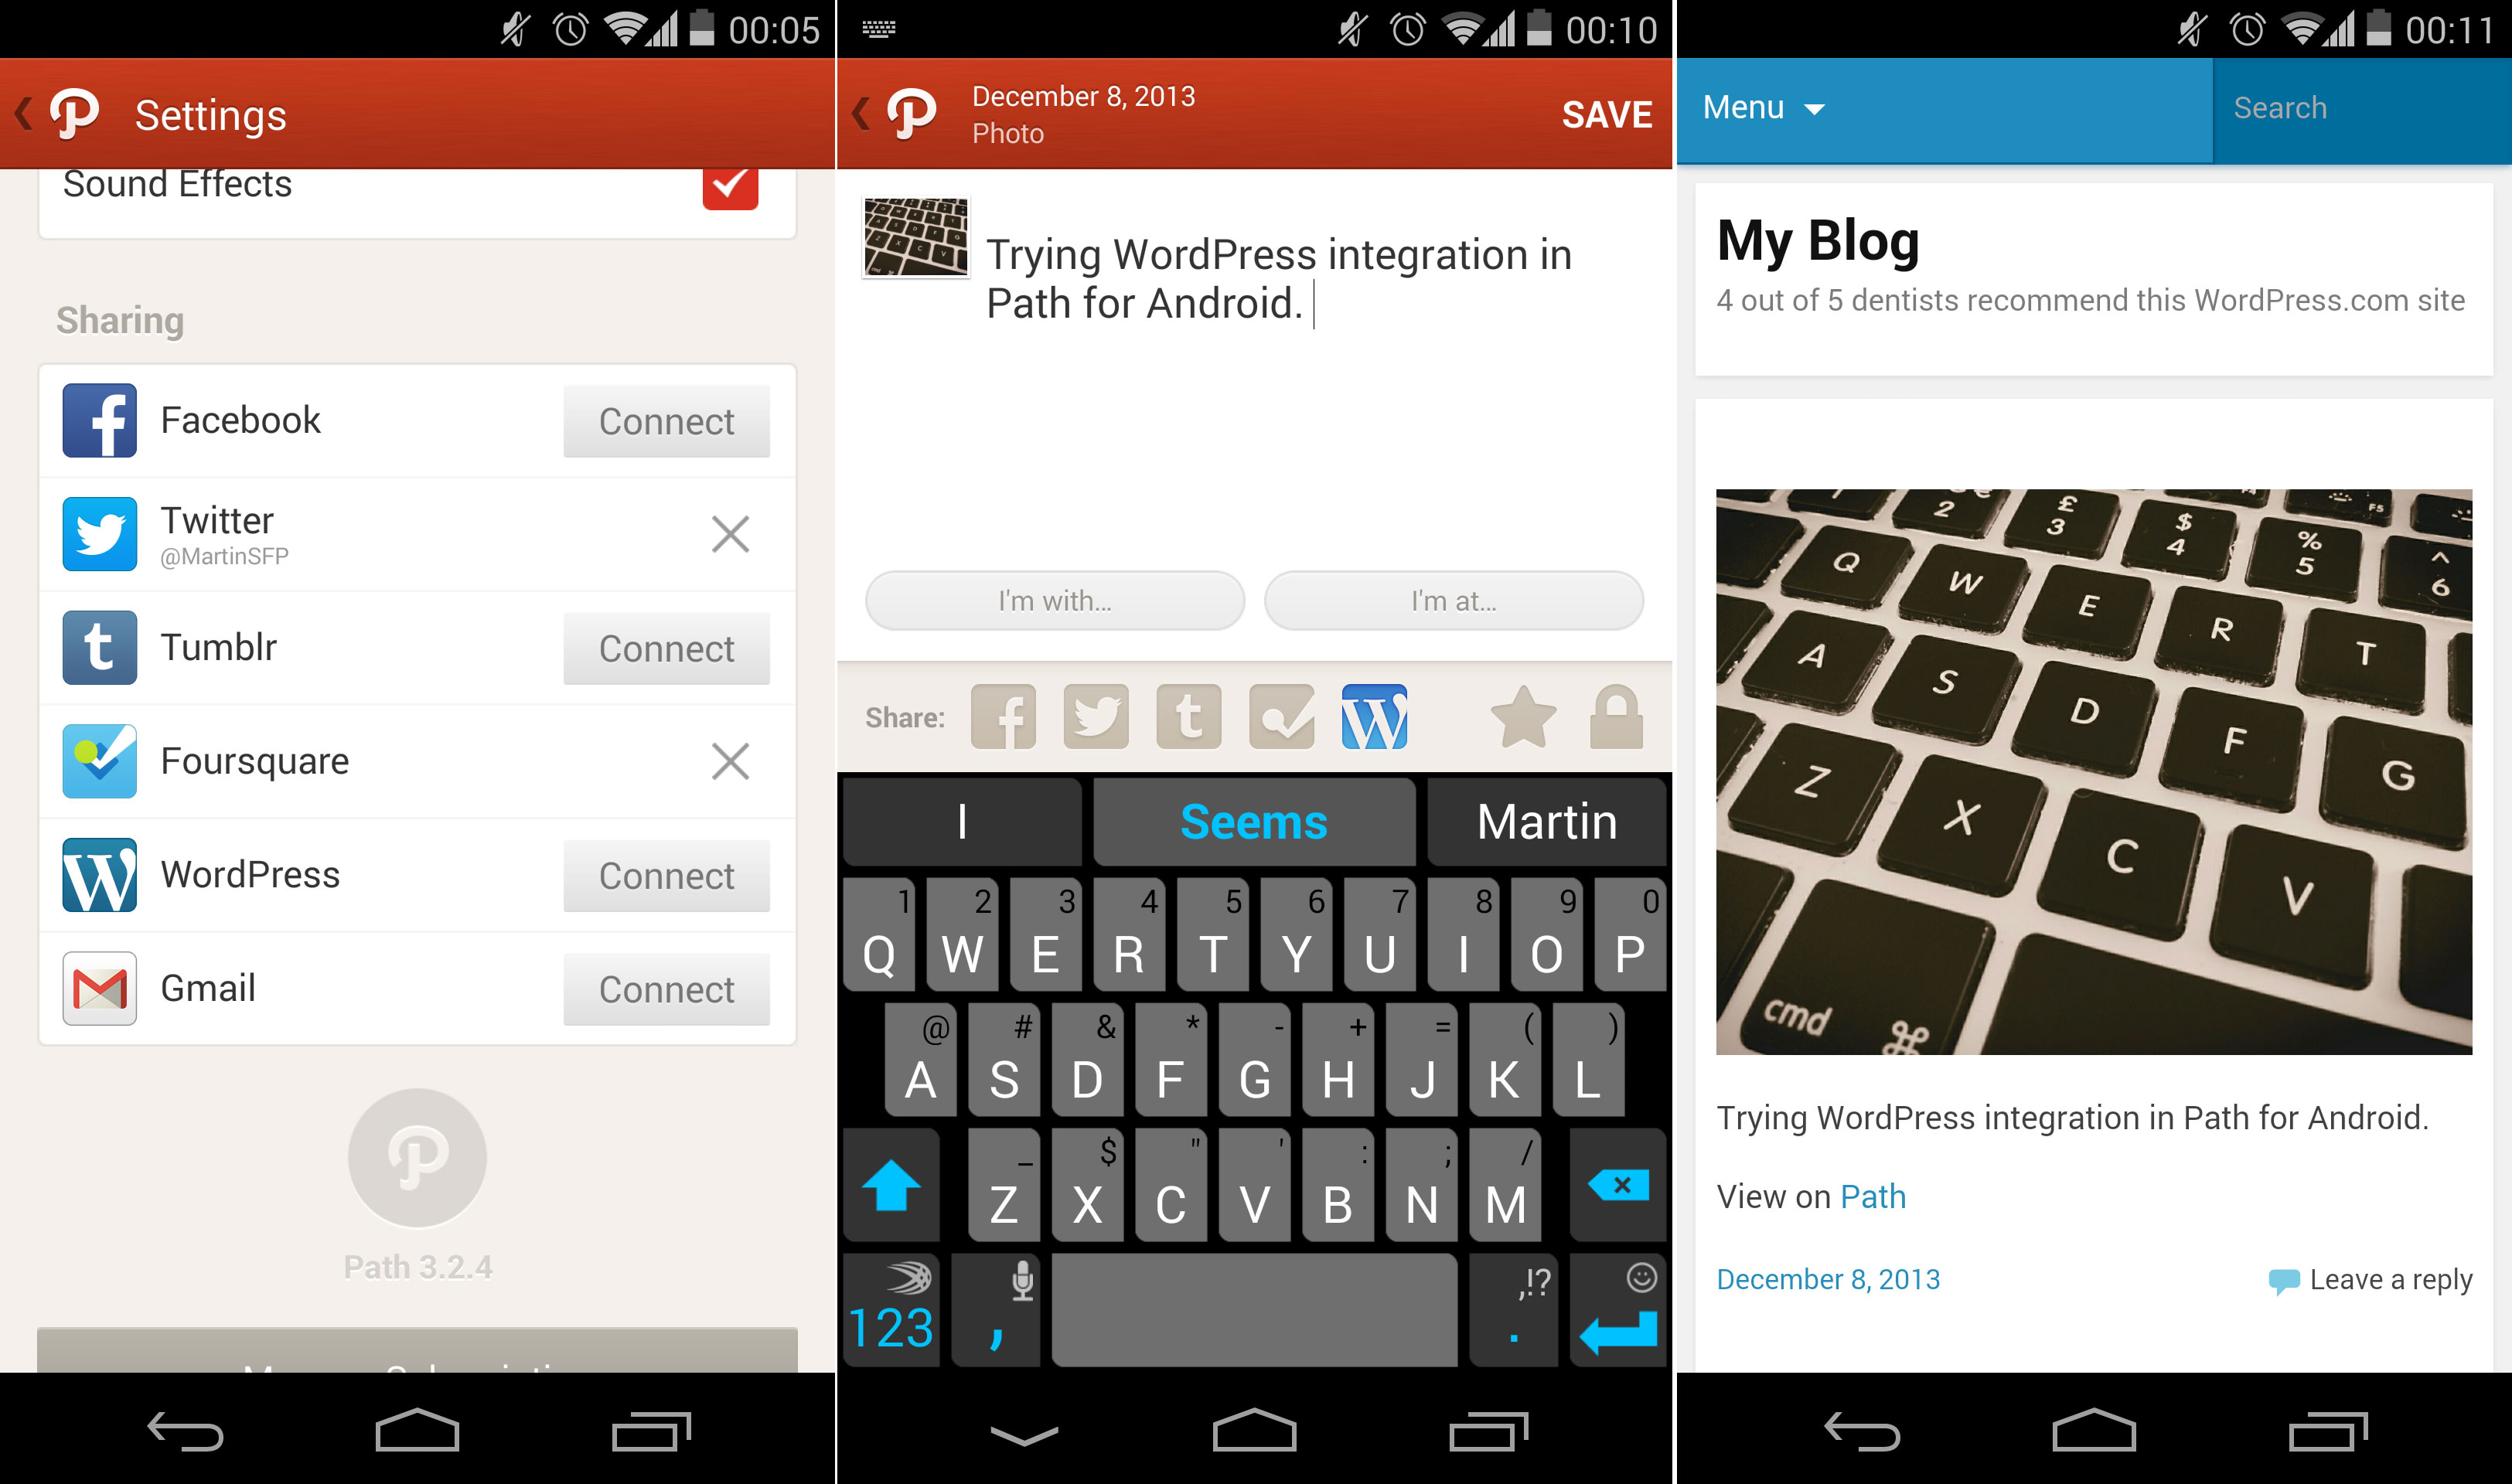 Path Adds Feature For Moments To Be Shared Directly To